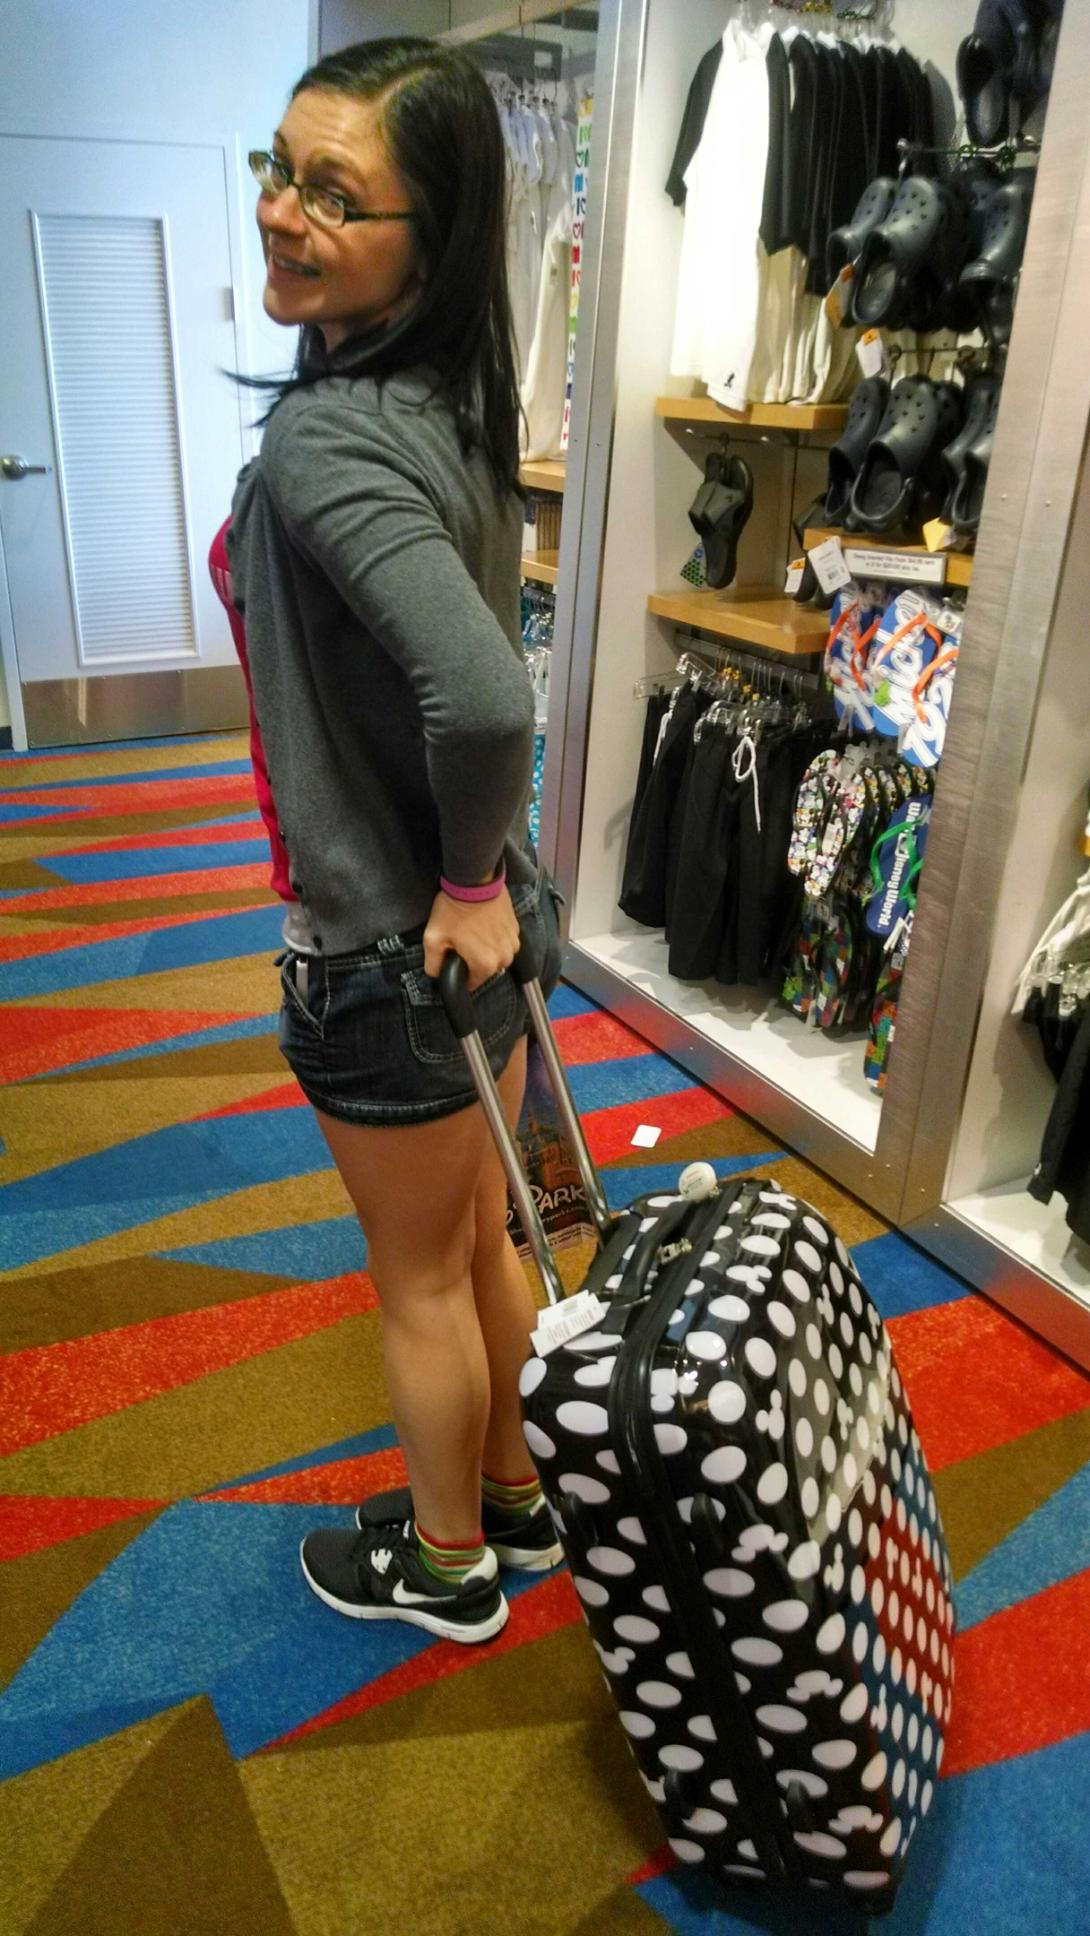 WDW Quick Tips: Pack Light And Skip The Checked Luggage